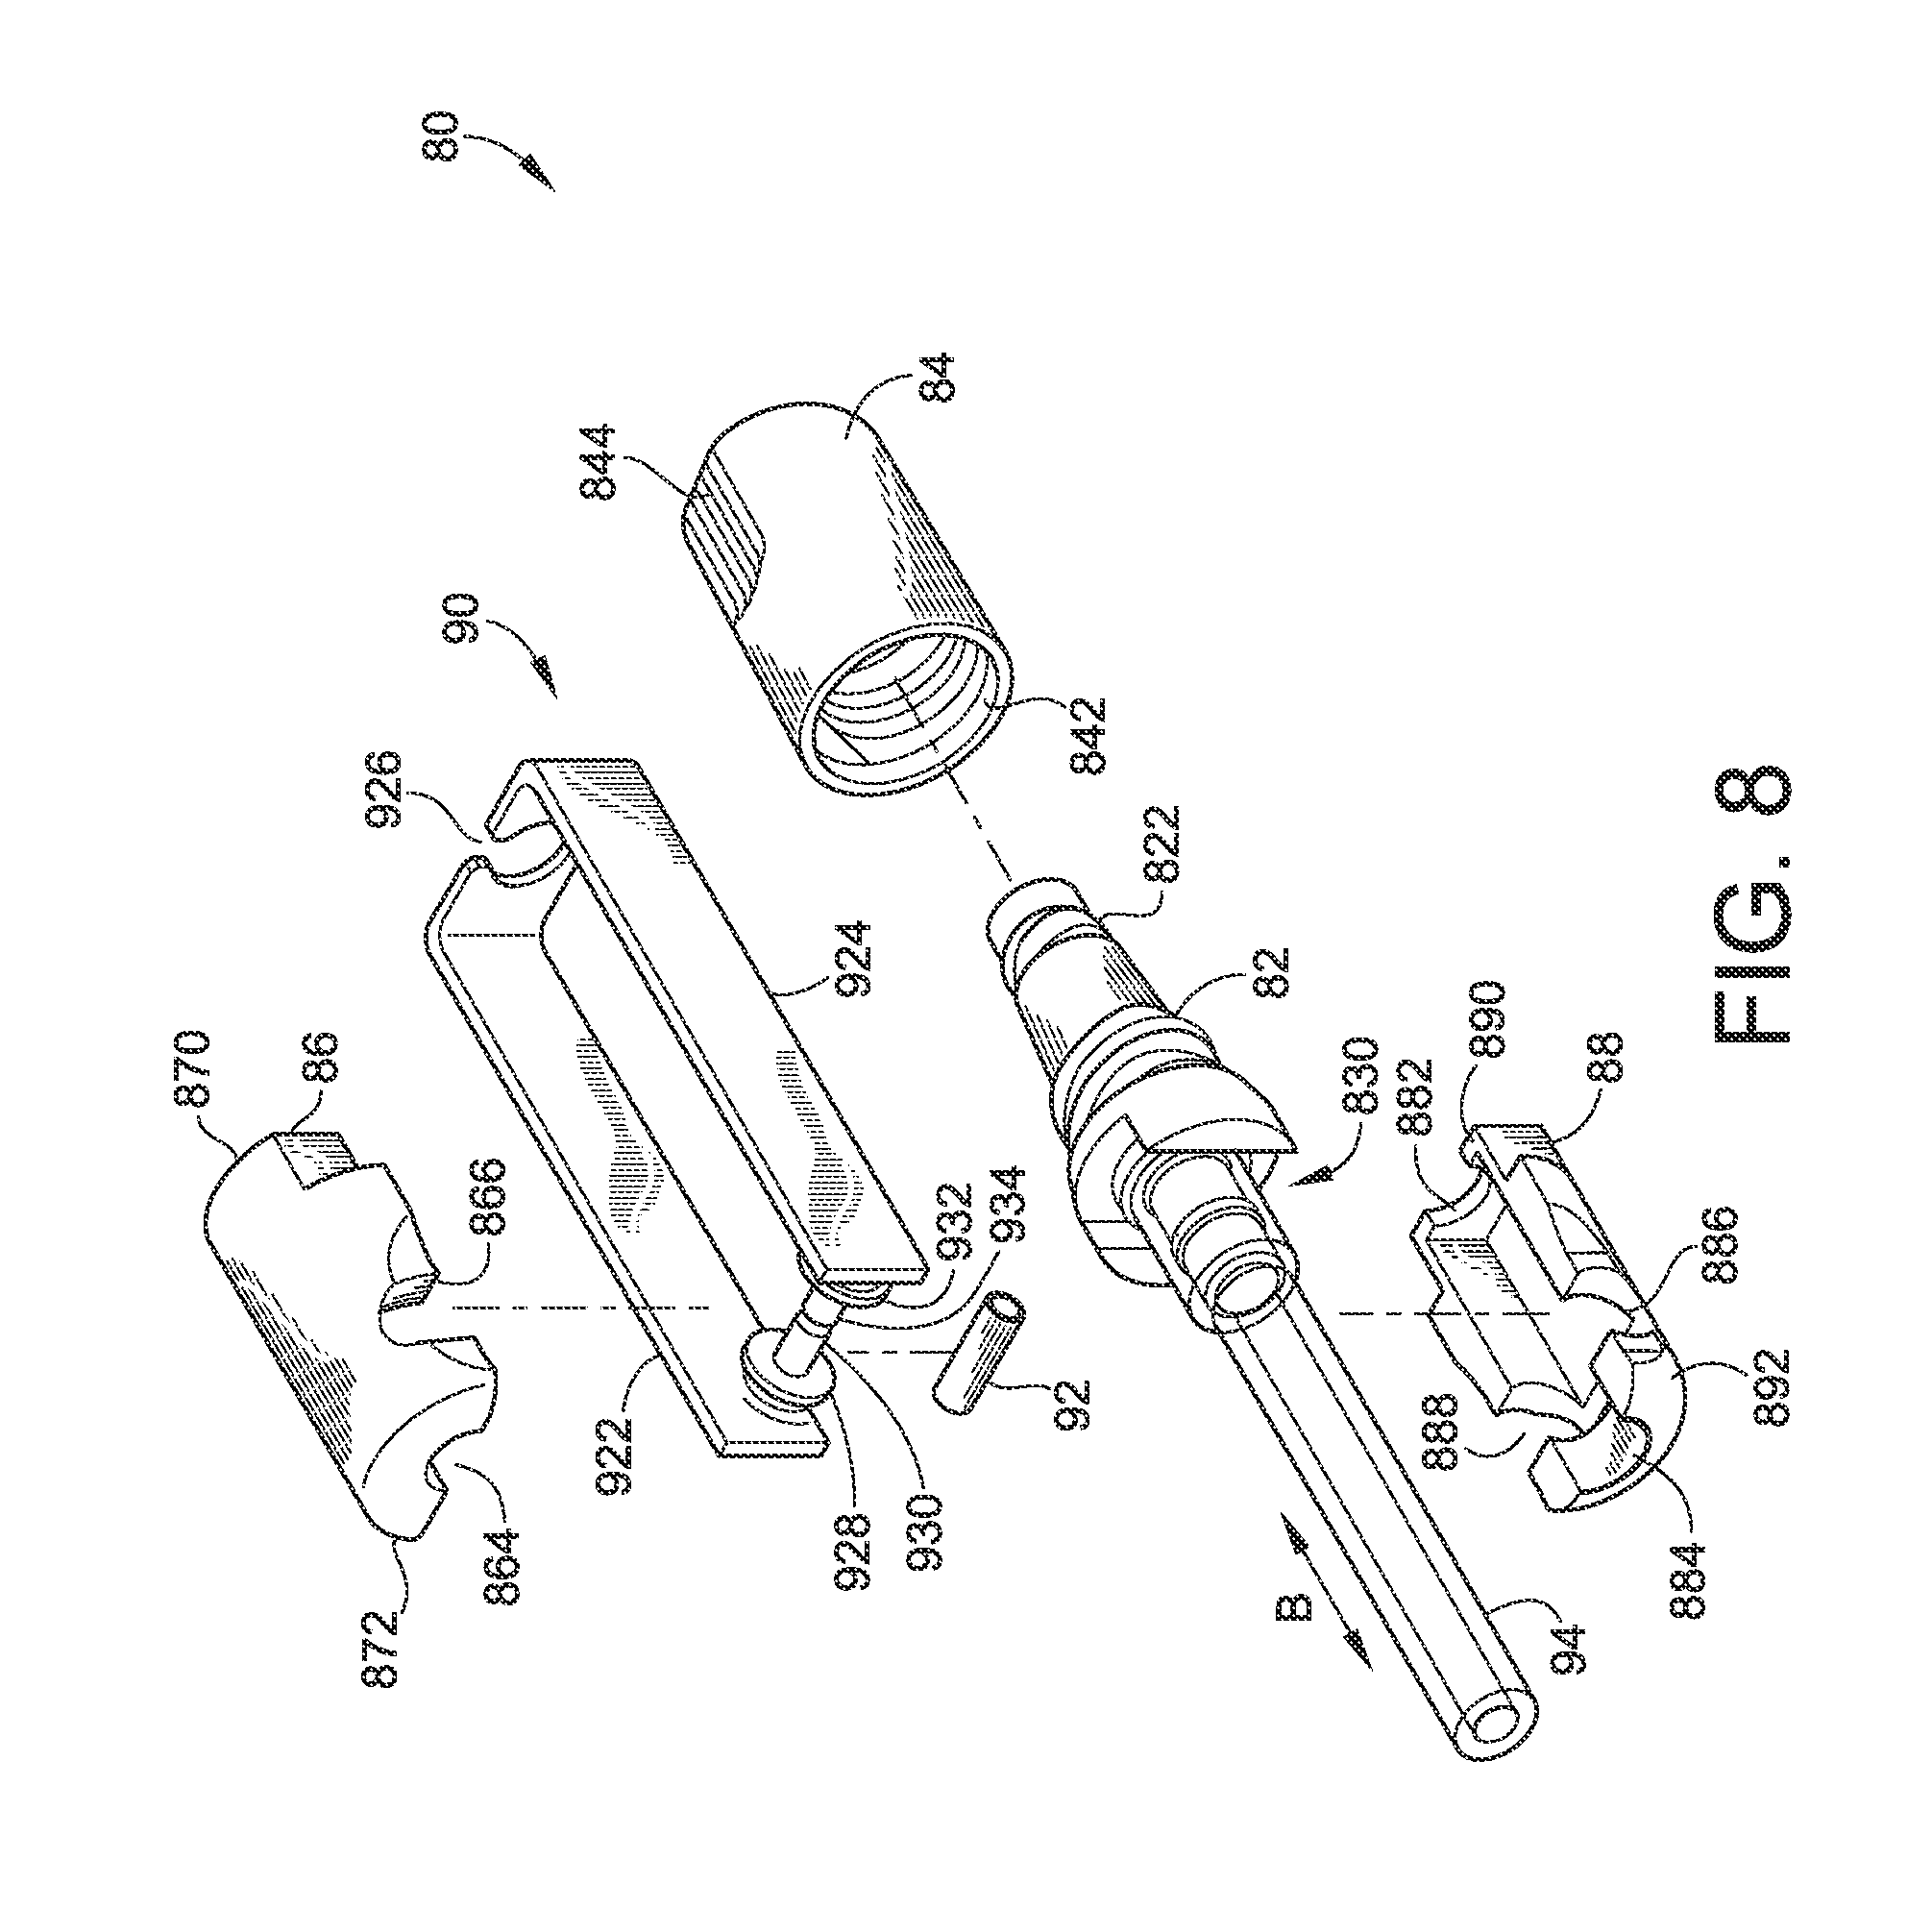 Patent us8636706 transfer sets for therapy optimization thunderheart smartlink at thunderheart ignition wiring diagram